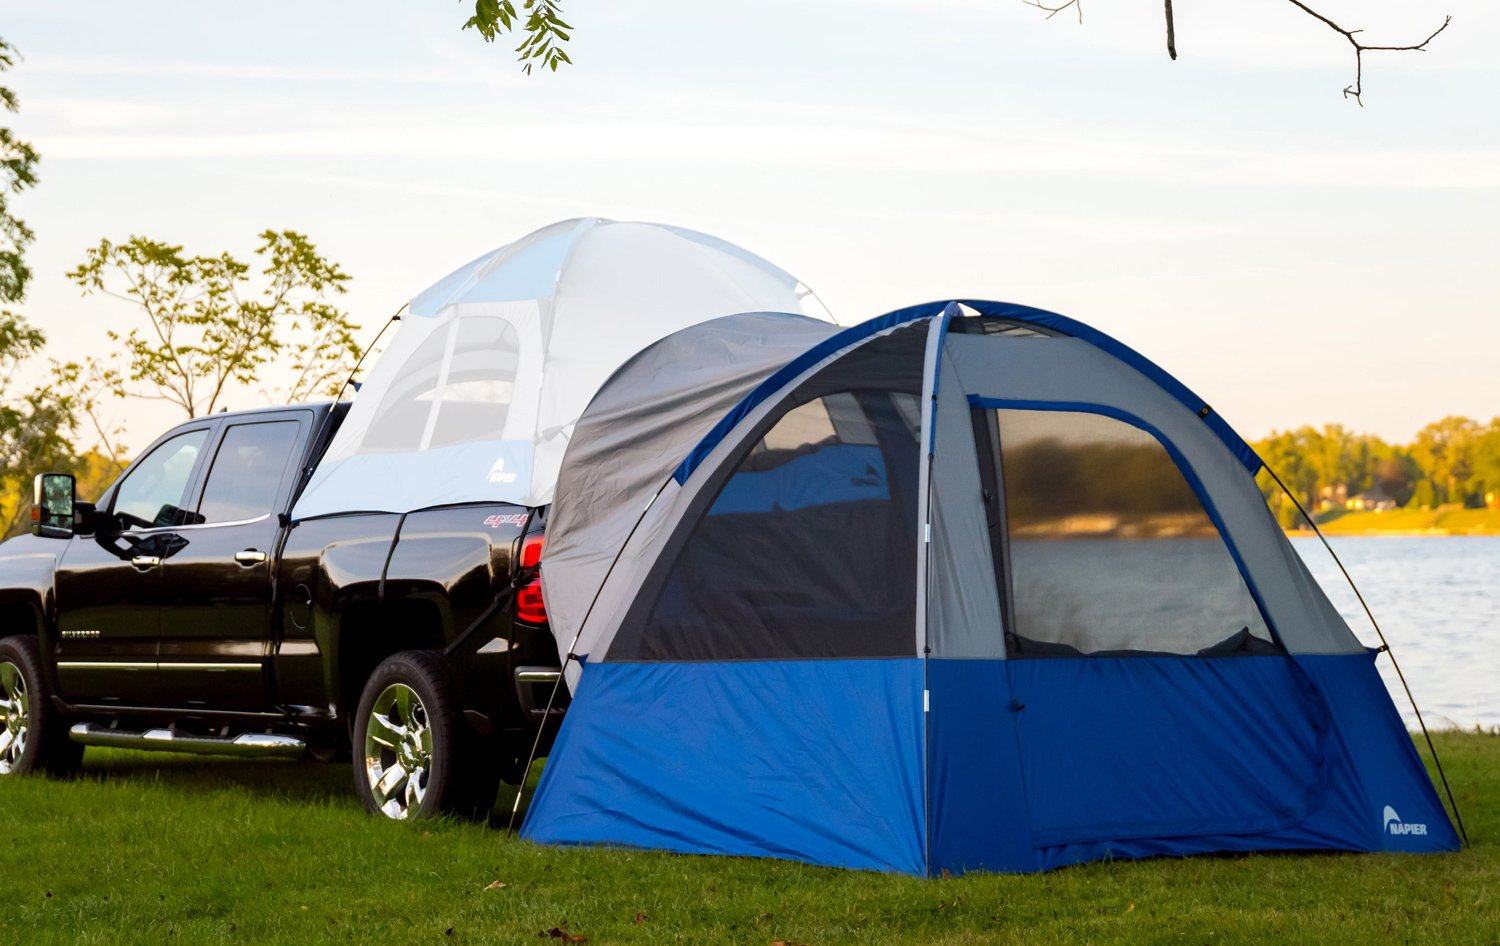 Sportz Link Ground Tent & Sportz Link Ground Tent - Free Shipping